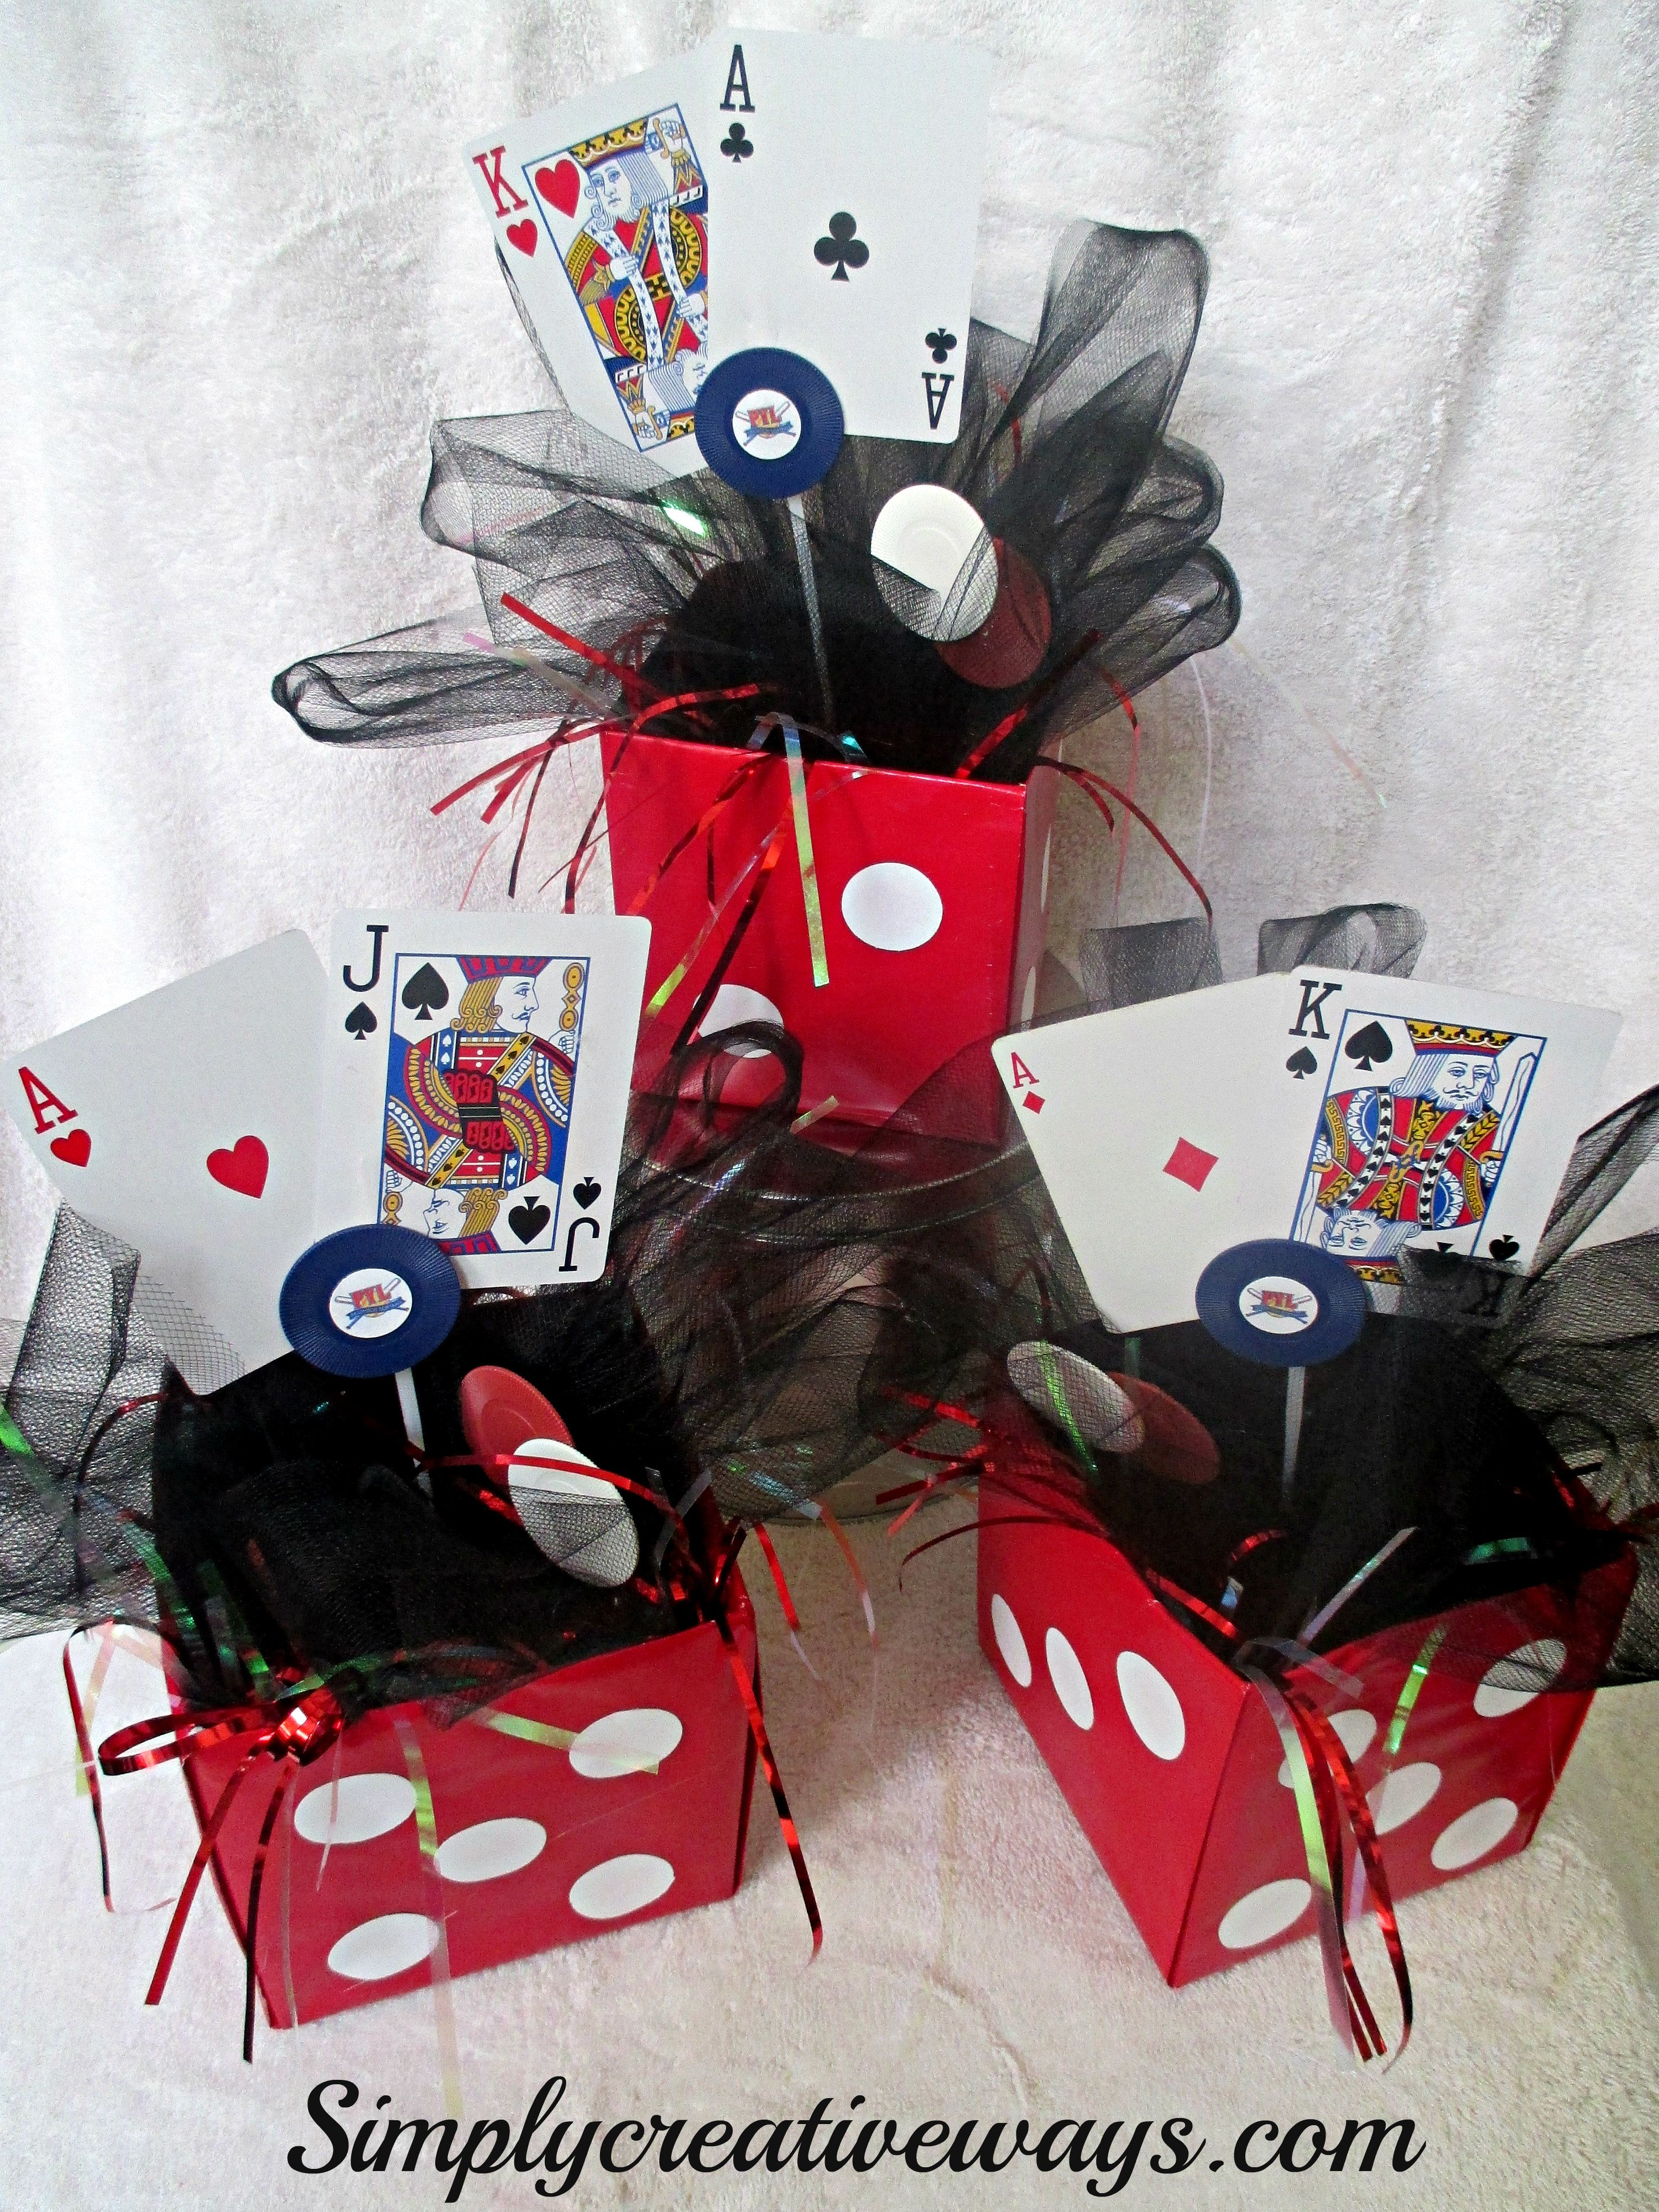 Casino Night Party Decorations casino night dice centerpieces- make all the cards add up to 30